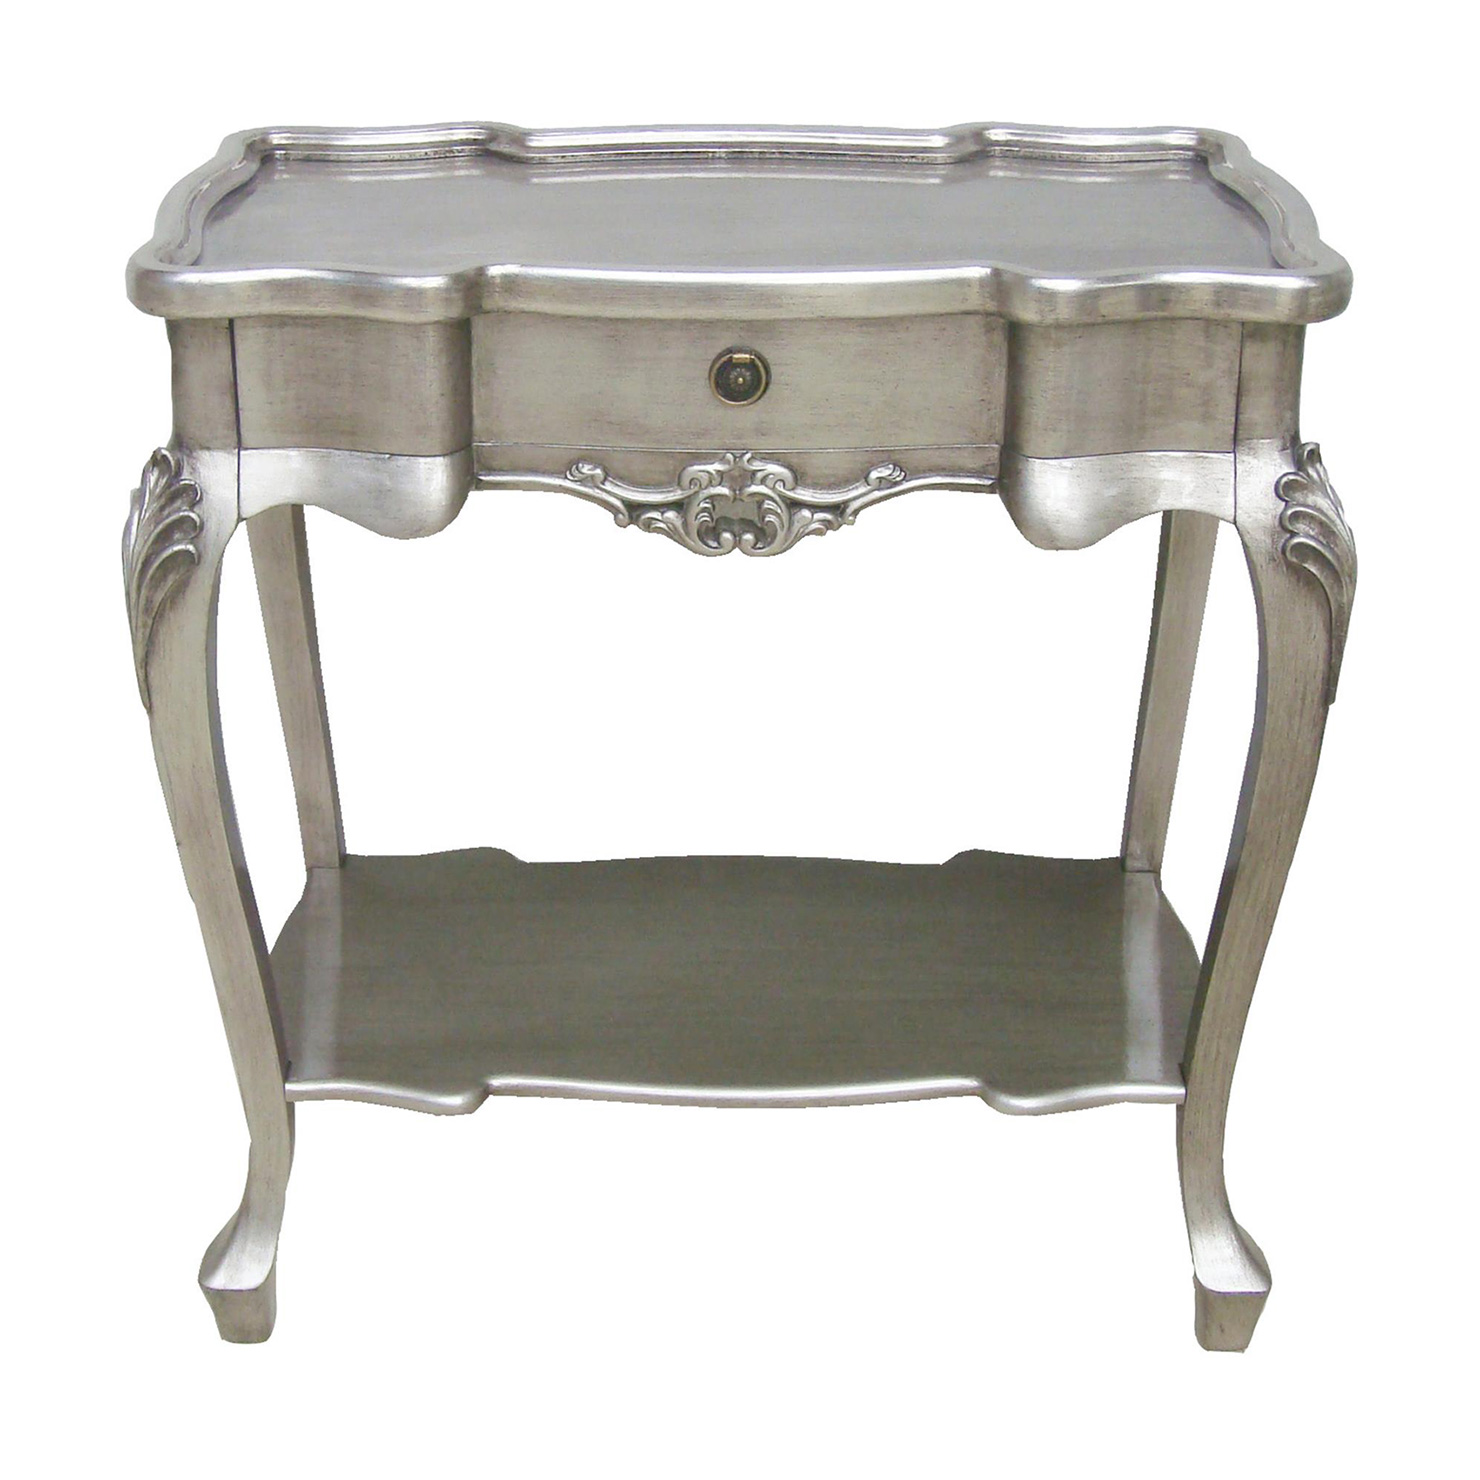 popular silver accent table with tables furniture nice old and vintage style mirrored shelves mackenzie outdoor lamps battery operated chests cabinets square trunk coffee grey